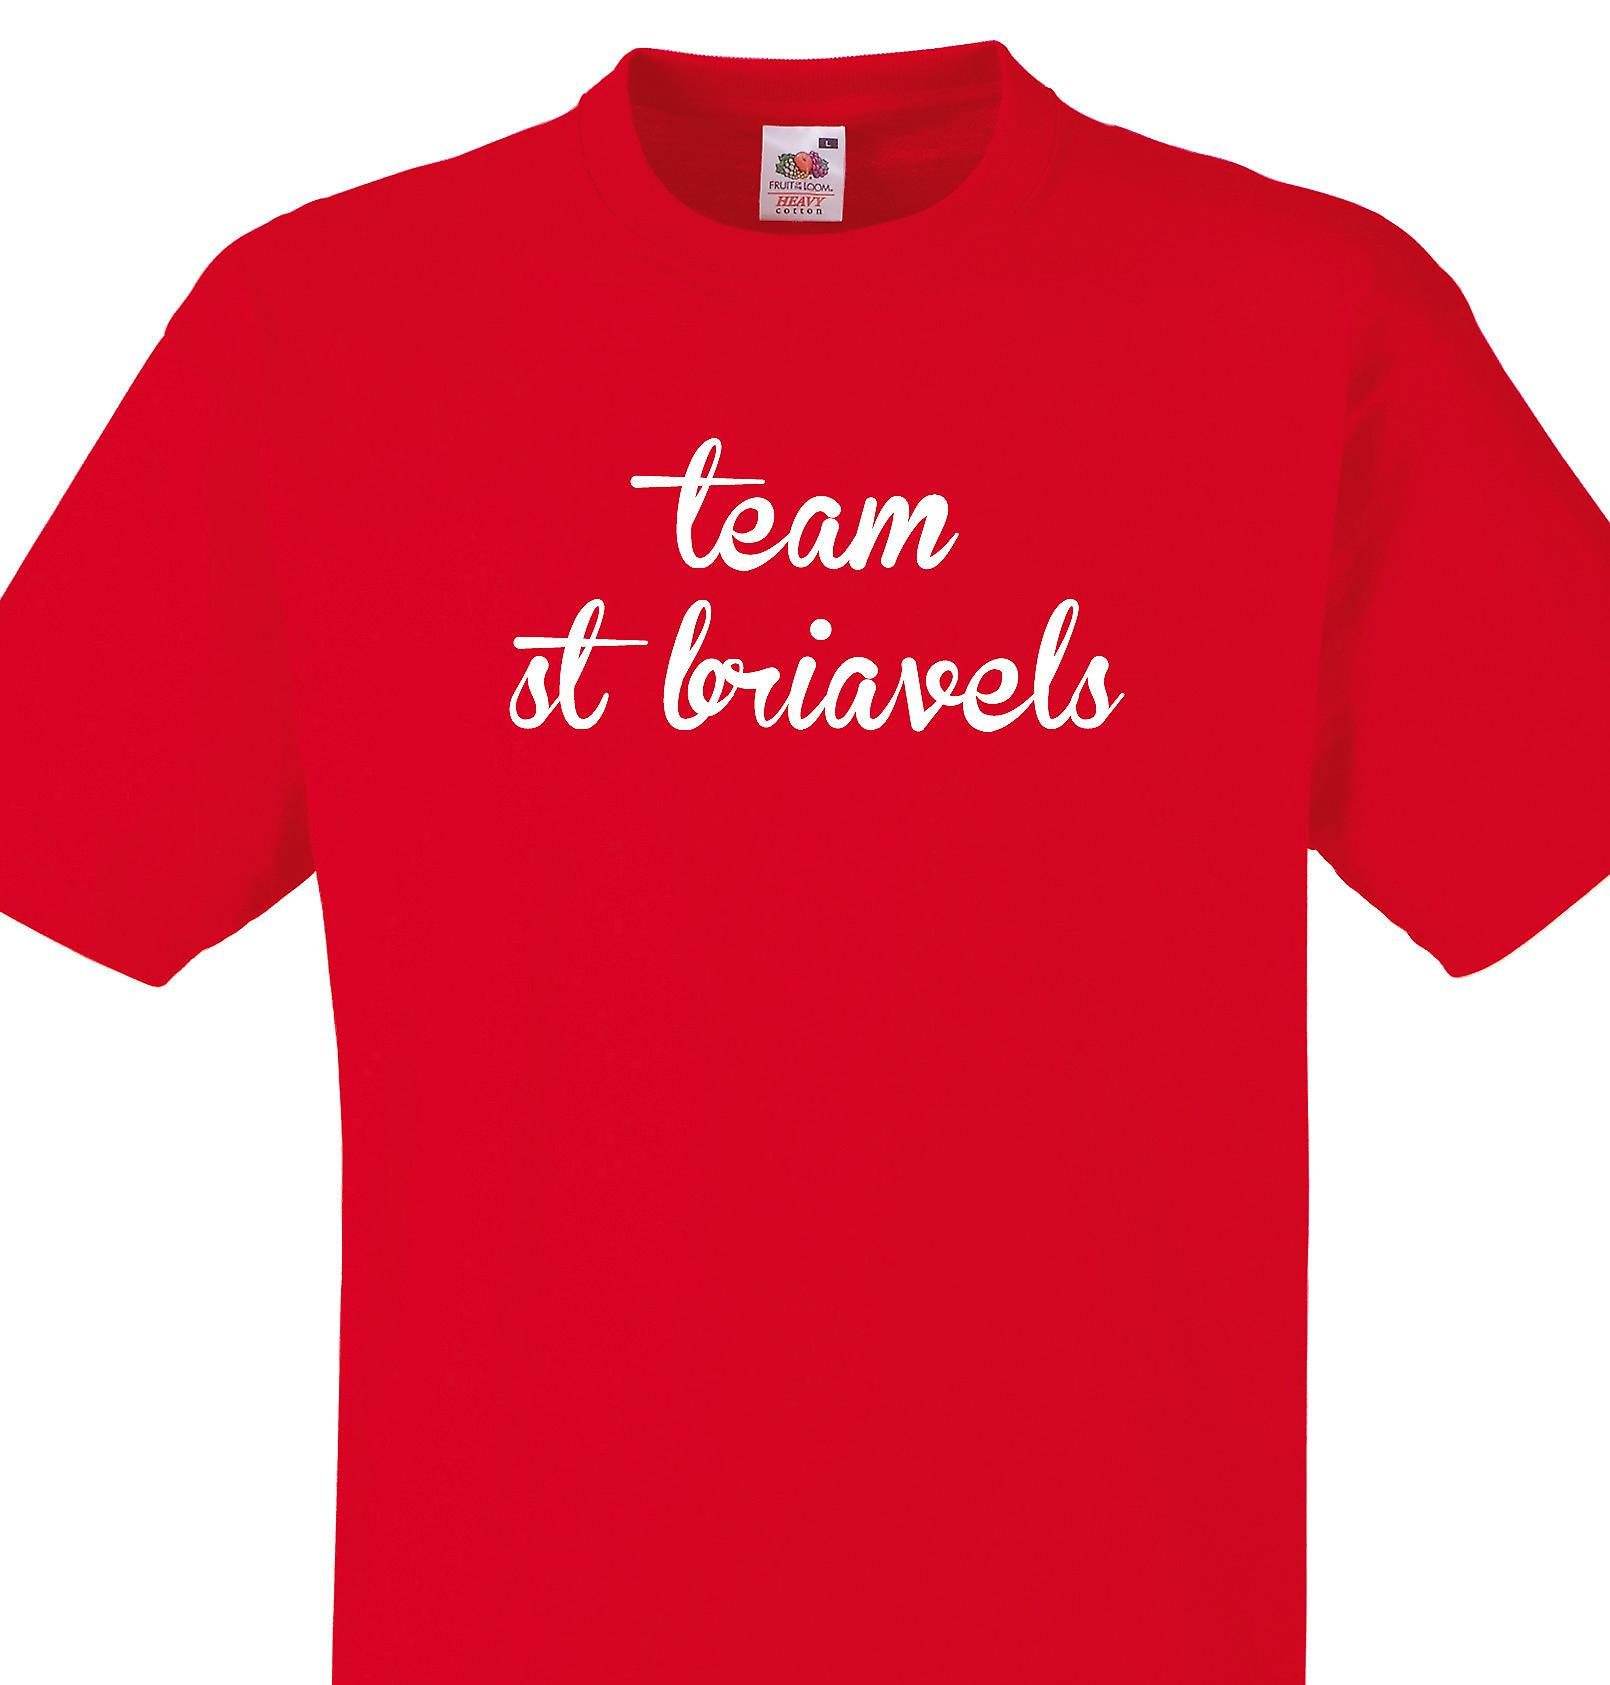 Team St briavels Red T shirt